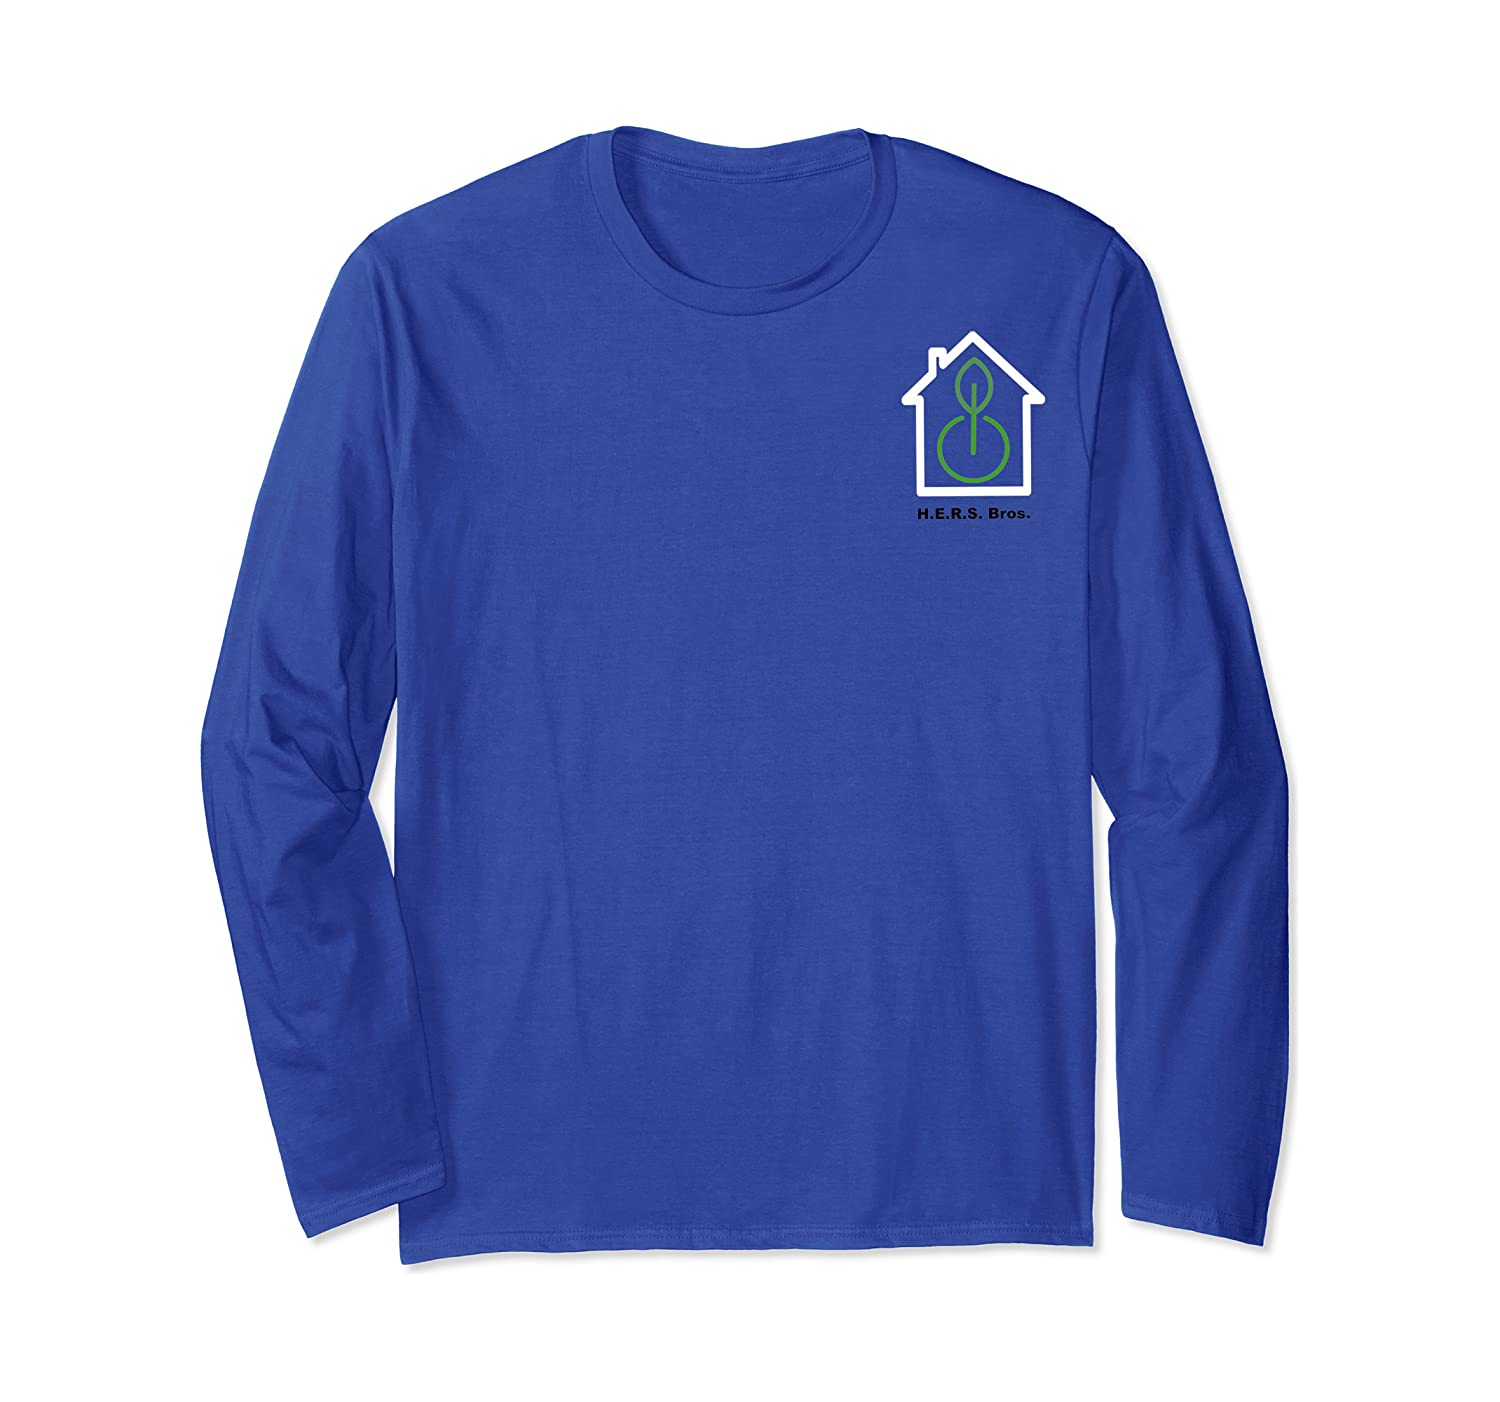 S Hers Bros Home Energy Rating System T-shirt Long Sleeve T-shirt